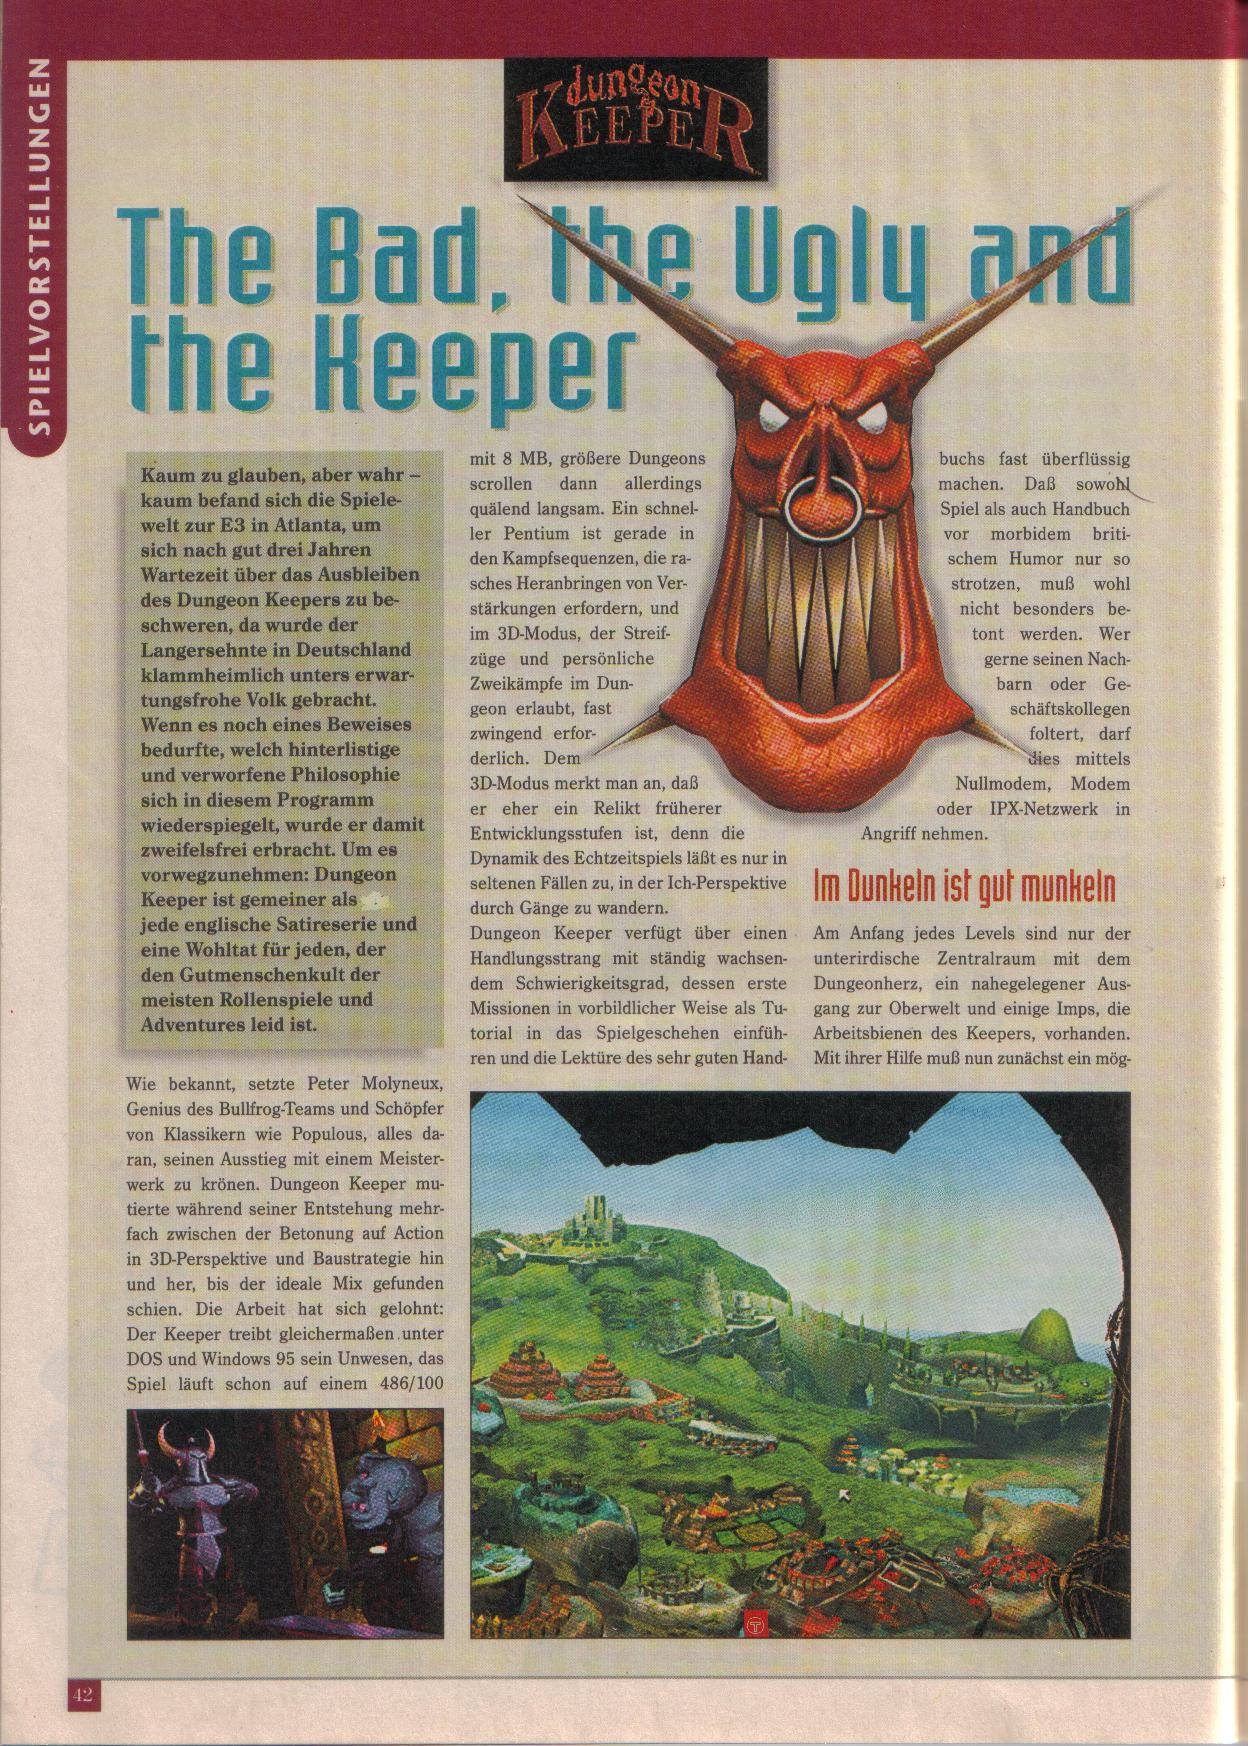 Dungeon Master II for PC (German, Best Seller Games) Page 42